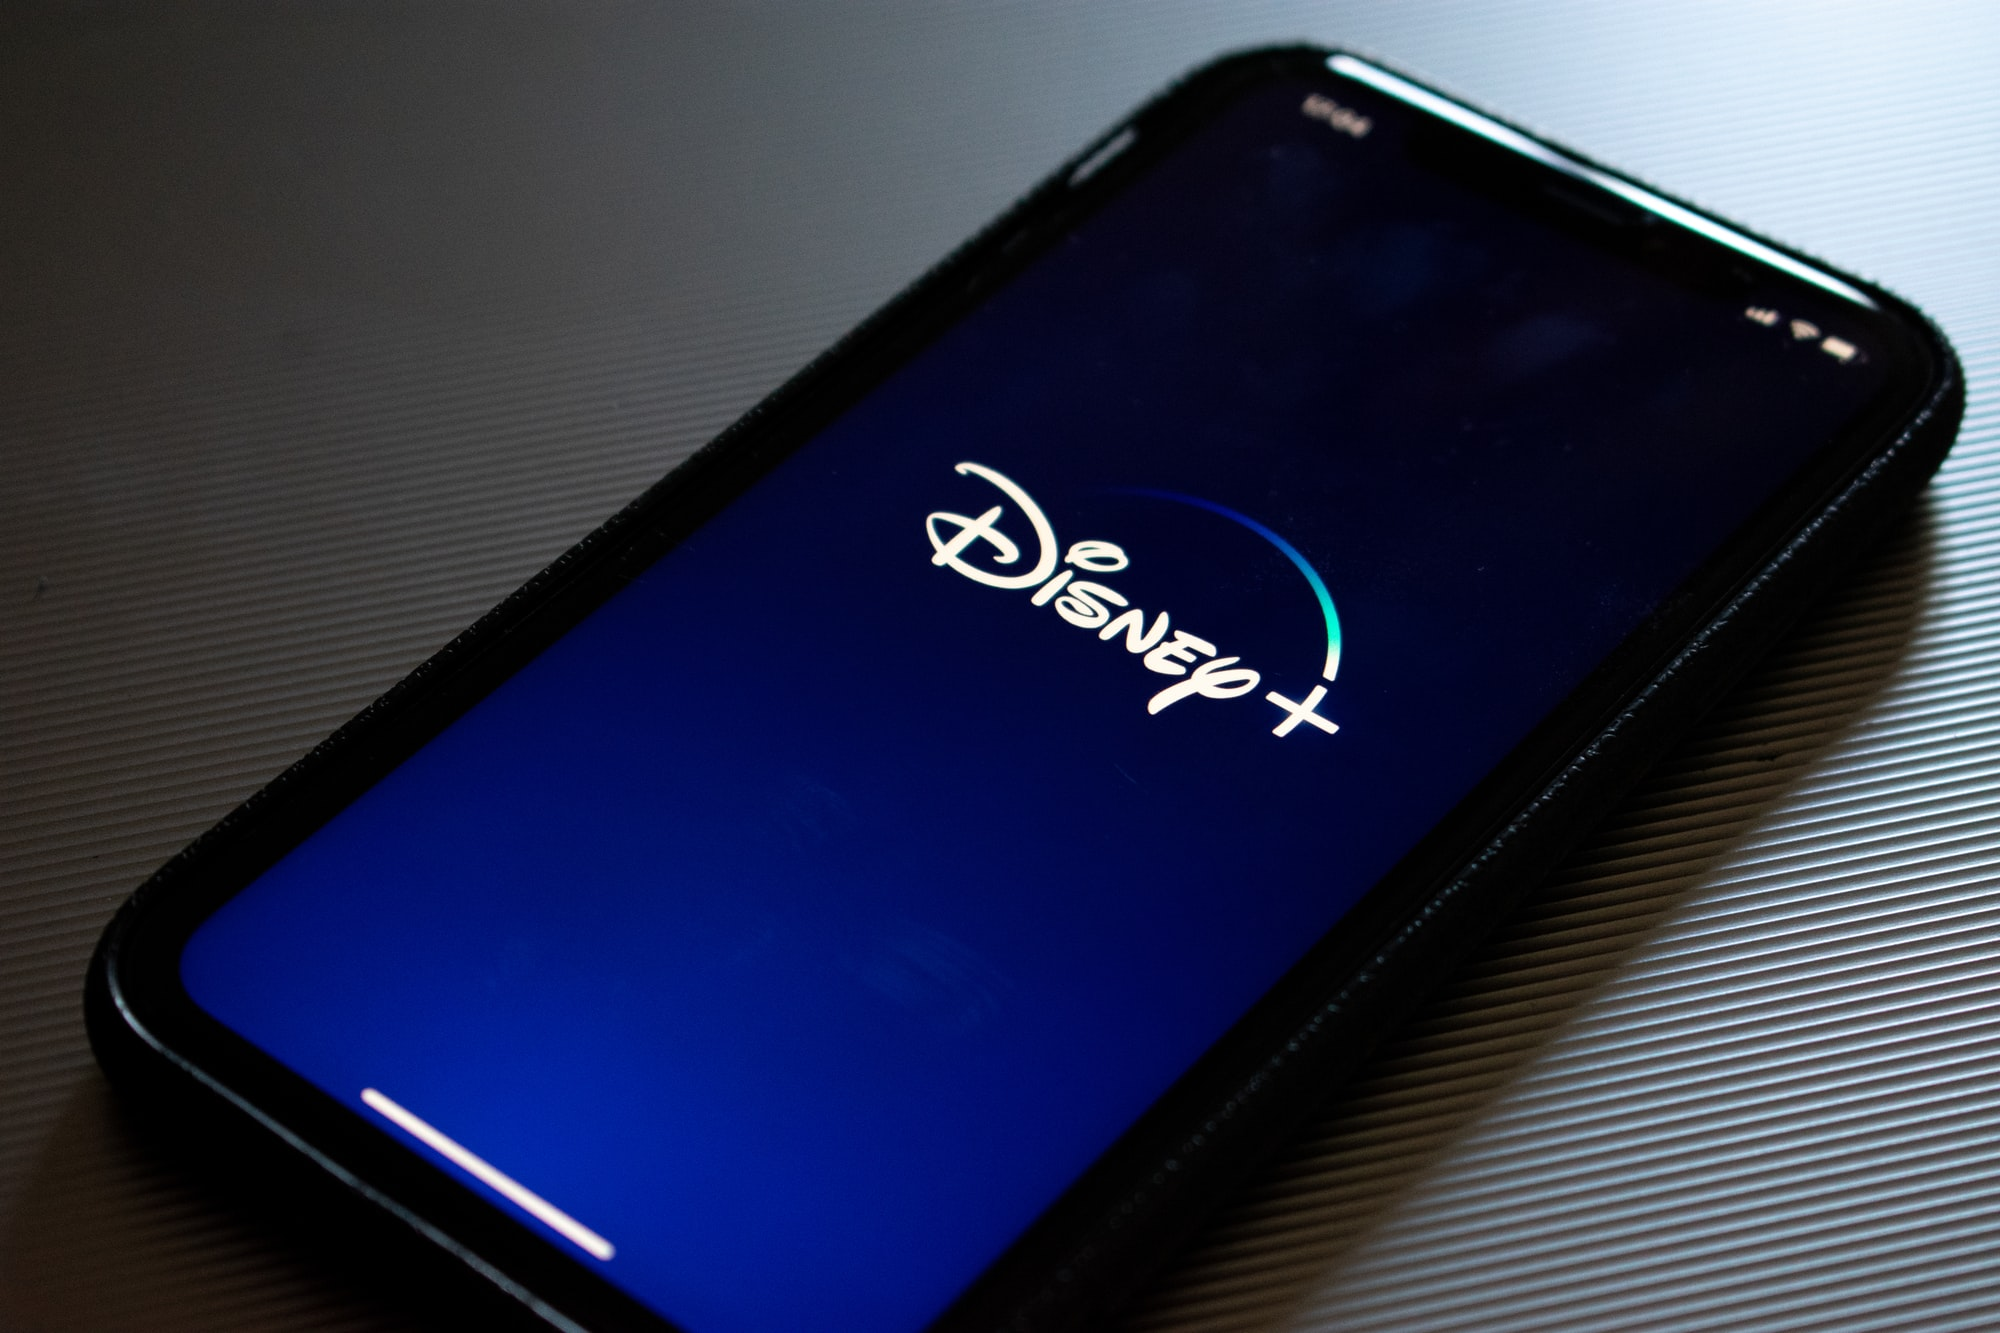 iPhone displaying the Disney plus app